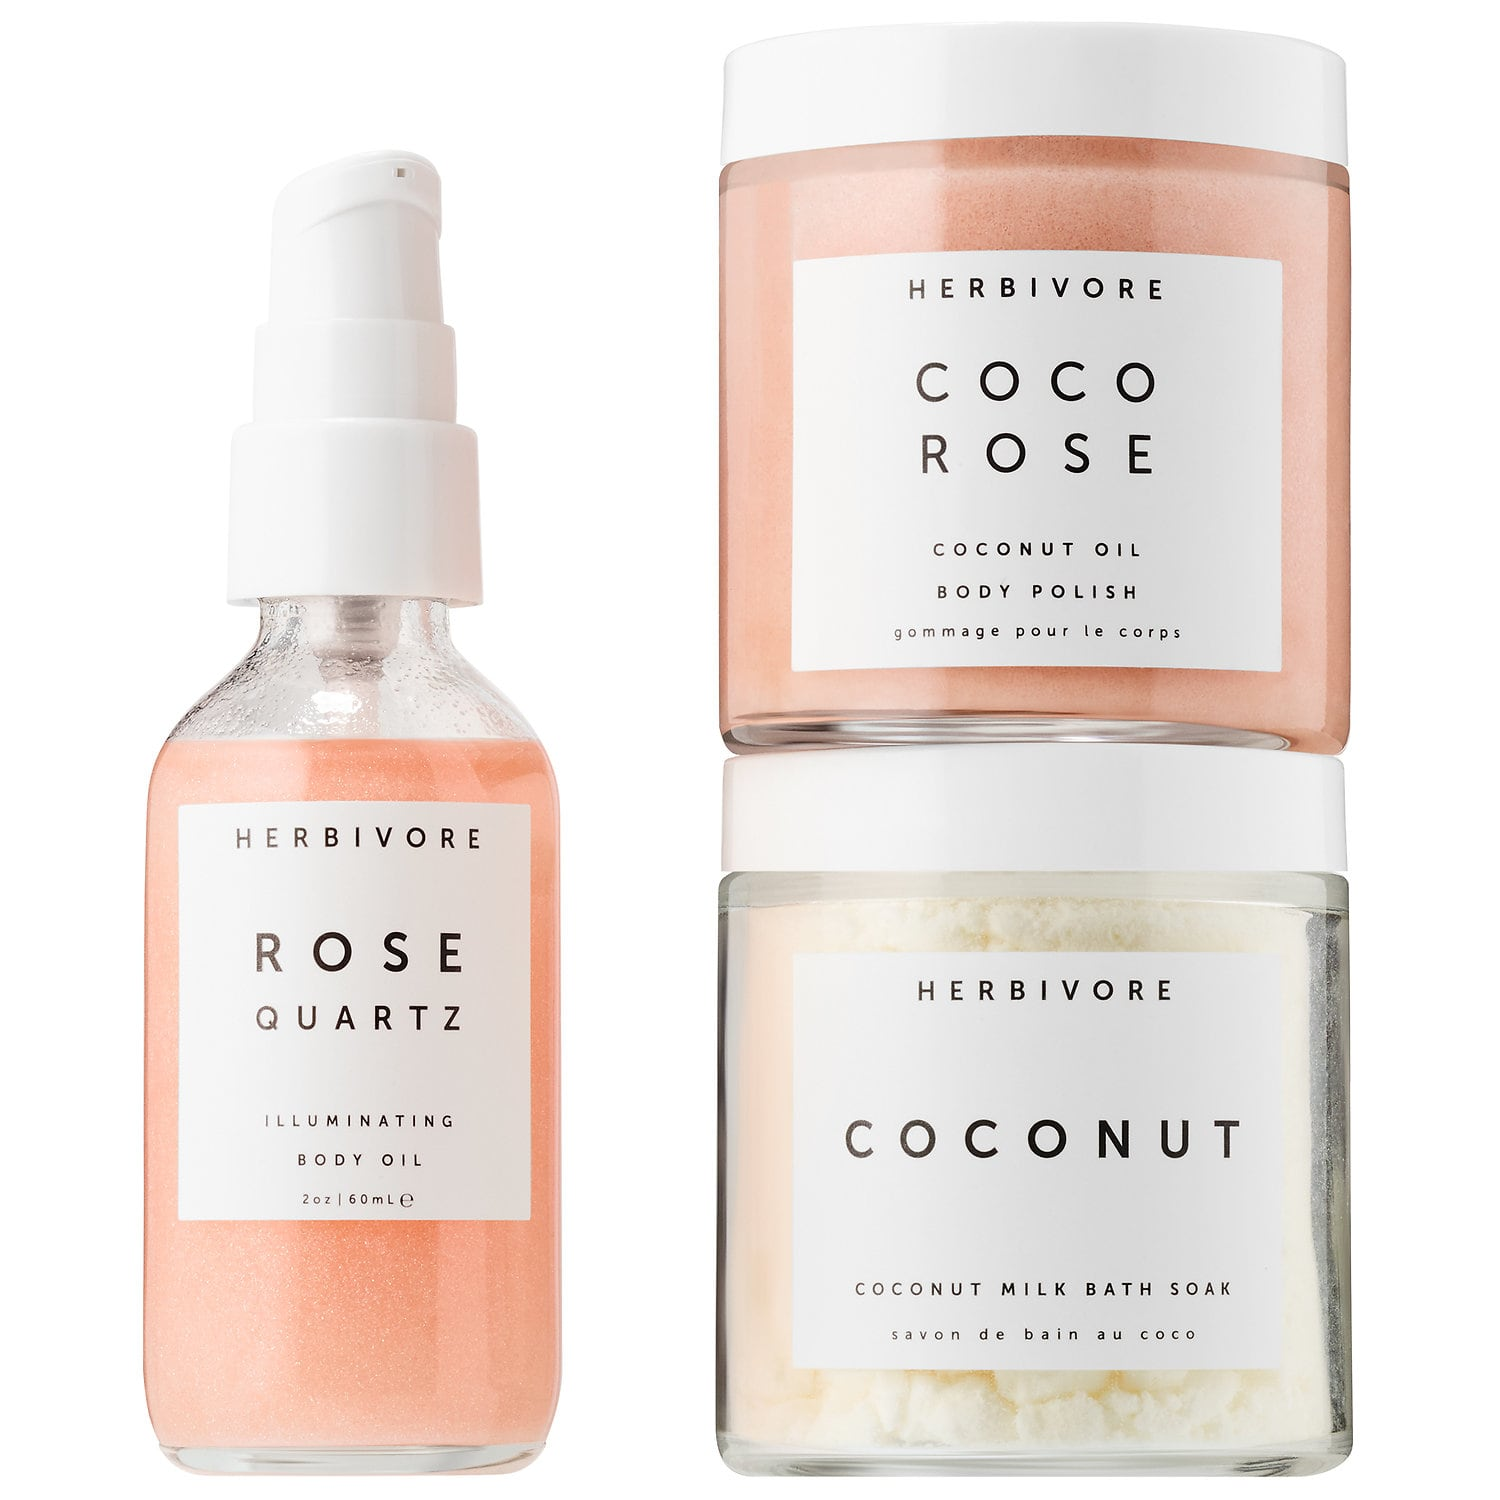 HERBIVORE Self Love Bath + Body Ritual Kit $36.00 This is a really easy and cute gift. Pop into your nearest Sephora or order it online and wrap it and your done! Thats the beauty of gift sets like this. They are so cute and people will love them. I love this idea cause this is stuff people wouldn't really think to buy themselves but they will love having it!   https://www.sephora.com/product/self-love-bath-body-ritual-kit-P438369?icid2=products%20grid:p438369:product